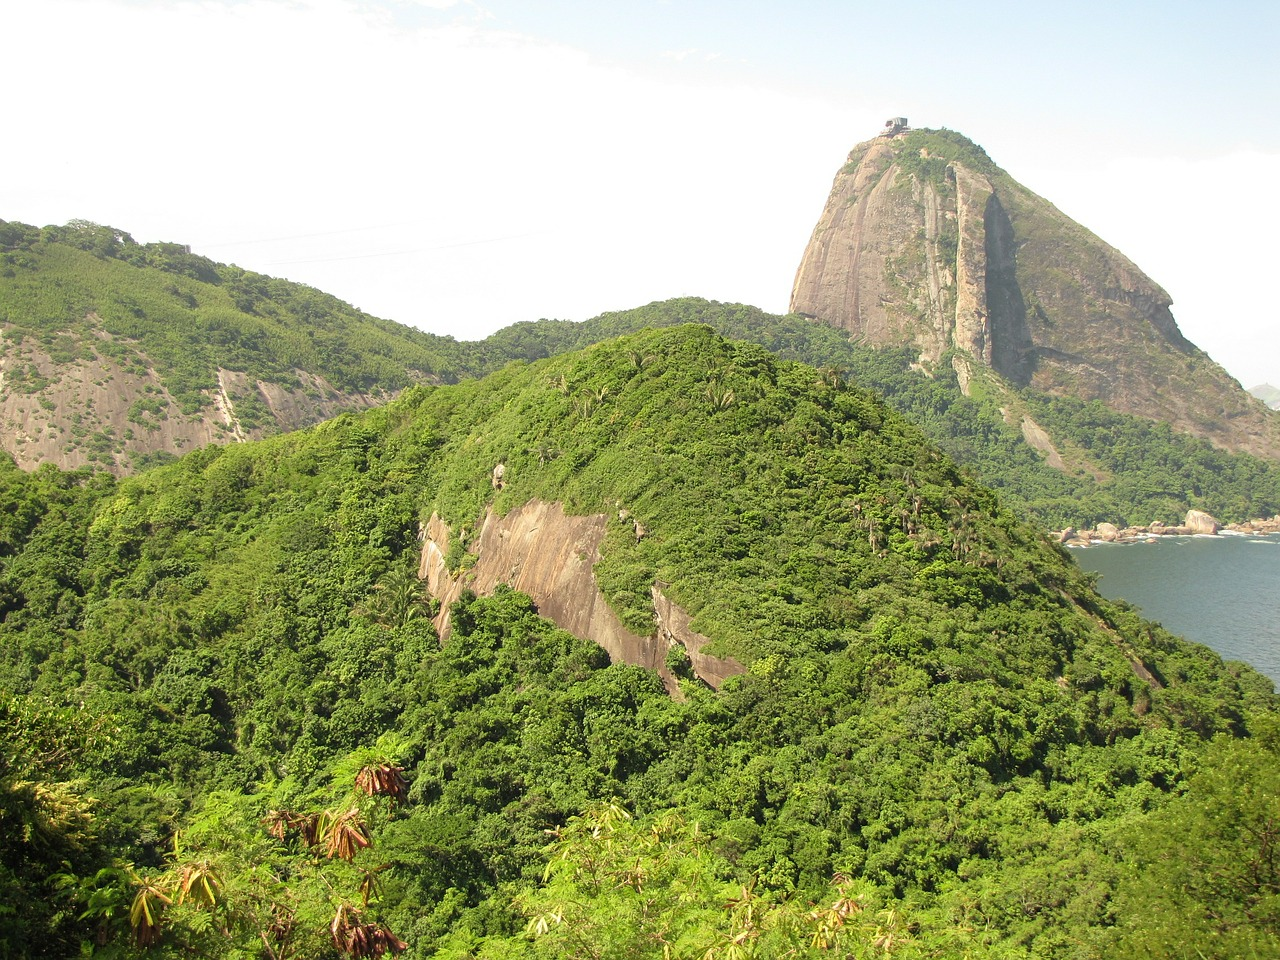 SEE: SUGAR LOAF MOUNTAIN